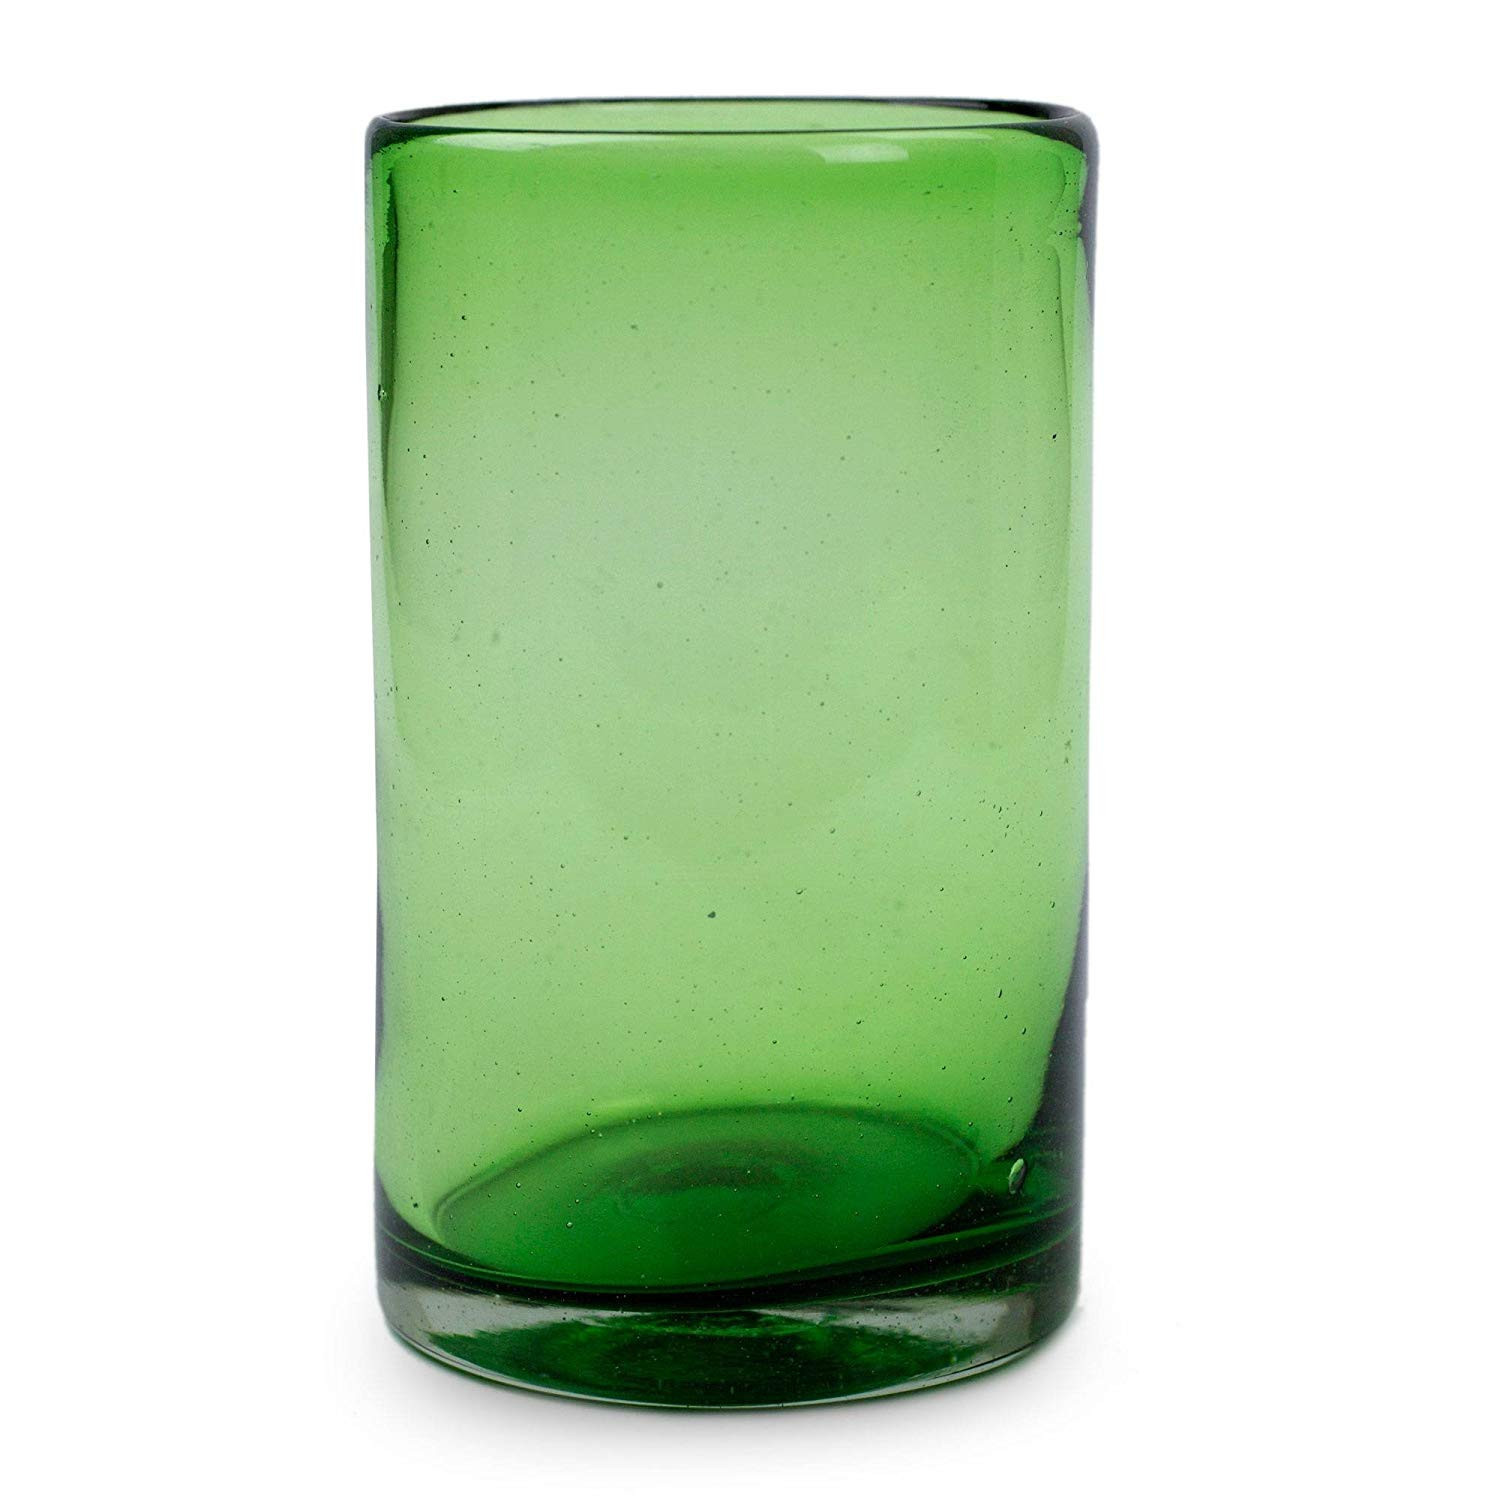 green bubble glass vase of amazon com novica hand blown recycled glass green water glasses pertaining to amazon com novica hand blown recycled glass green water glasses 13 oz emerald green set of 6 highball glasses